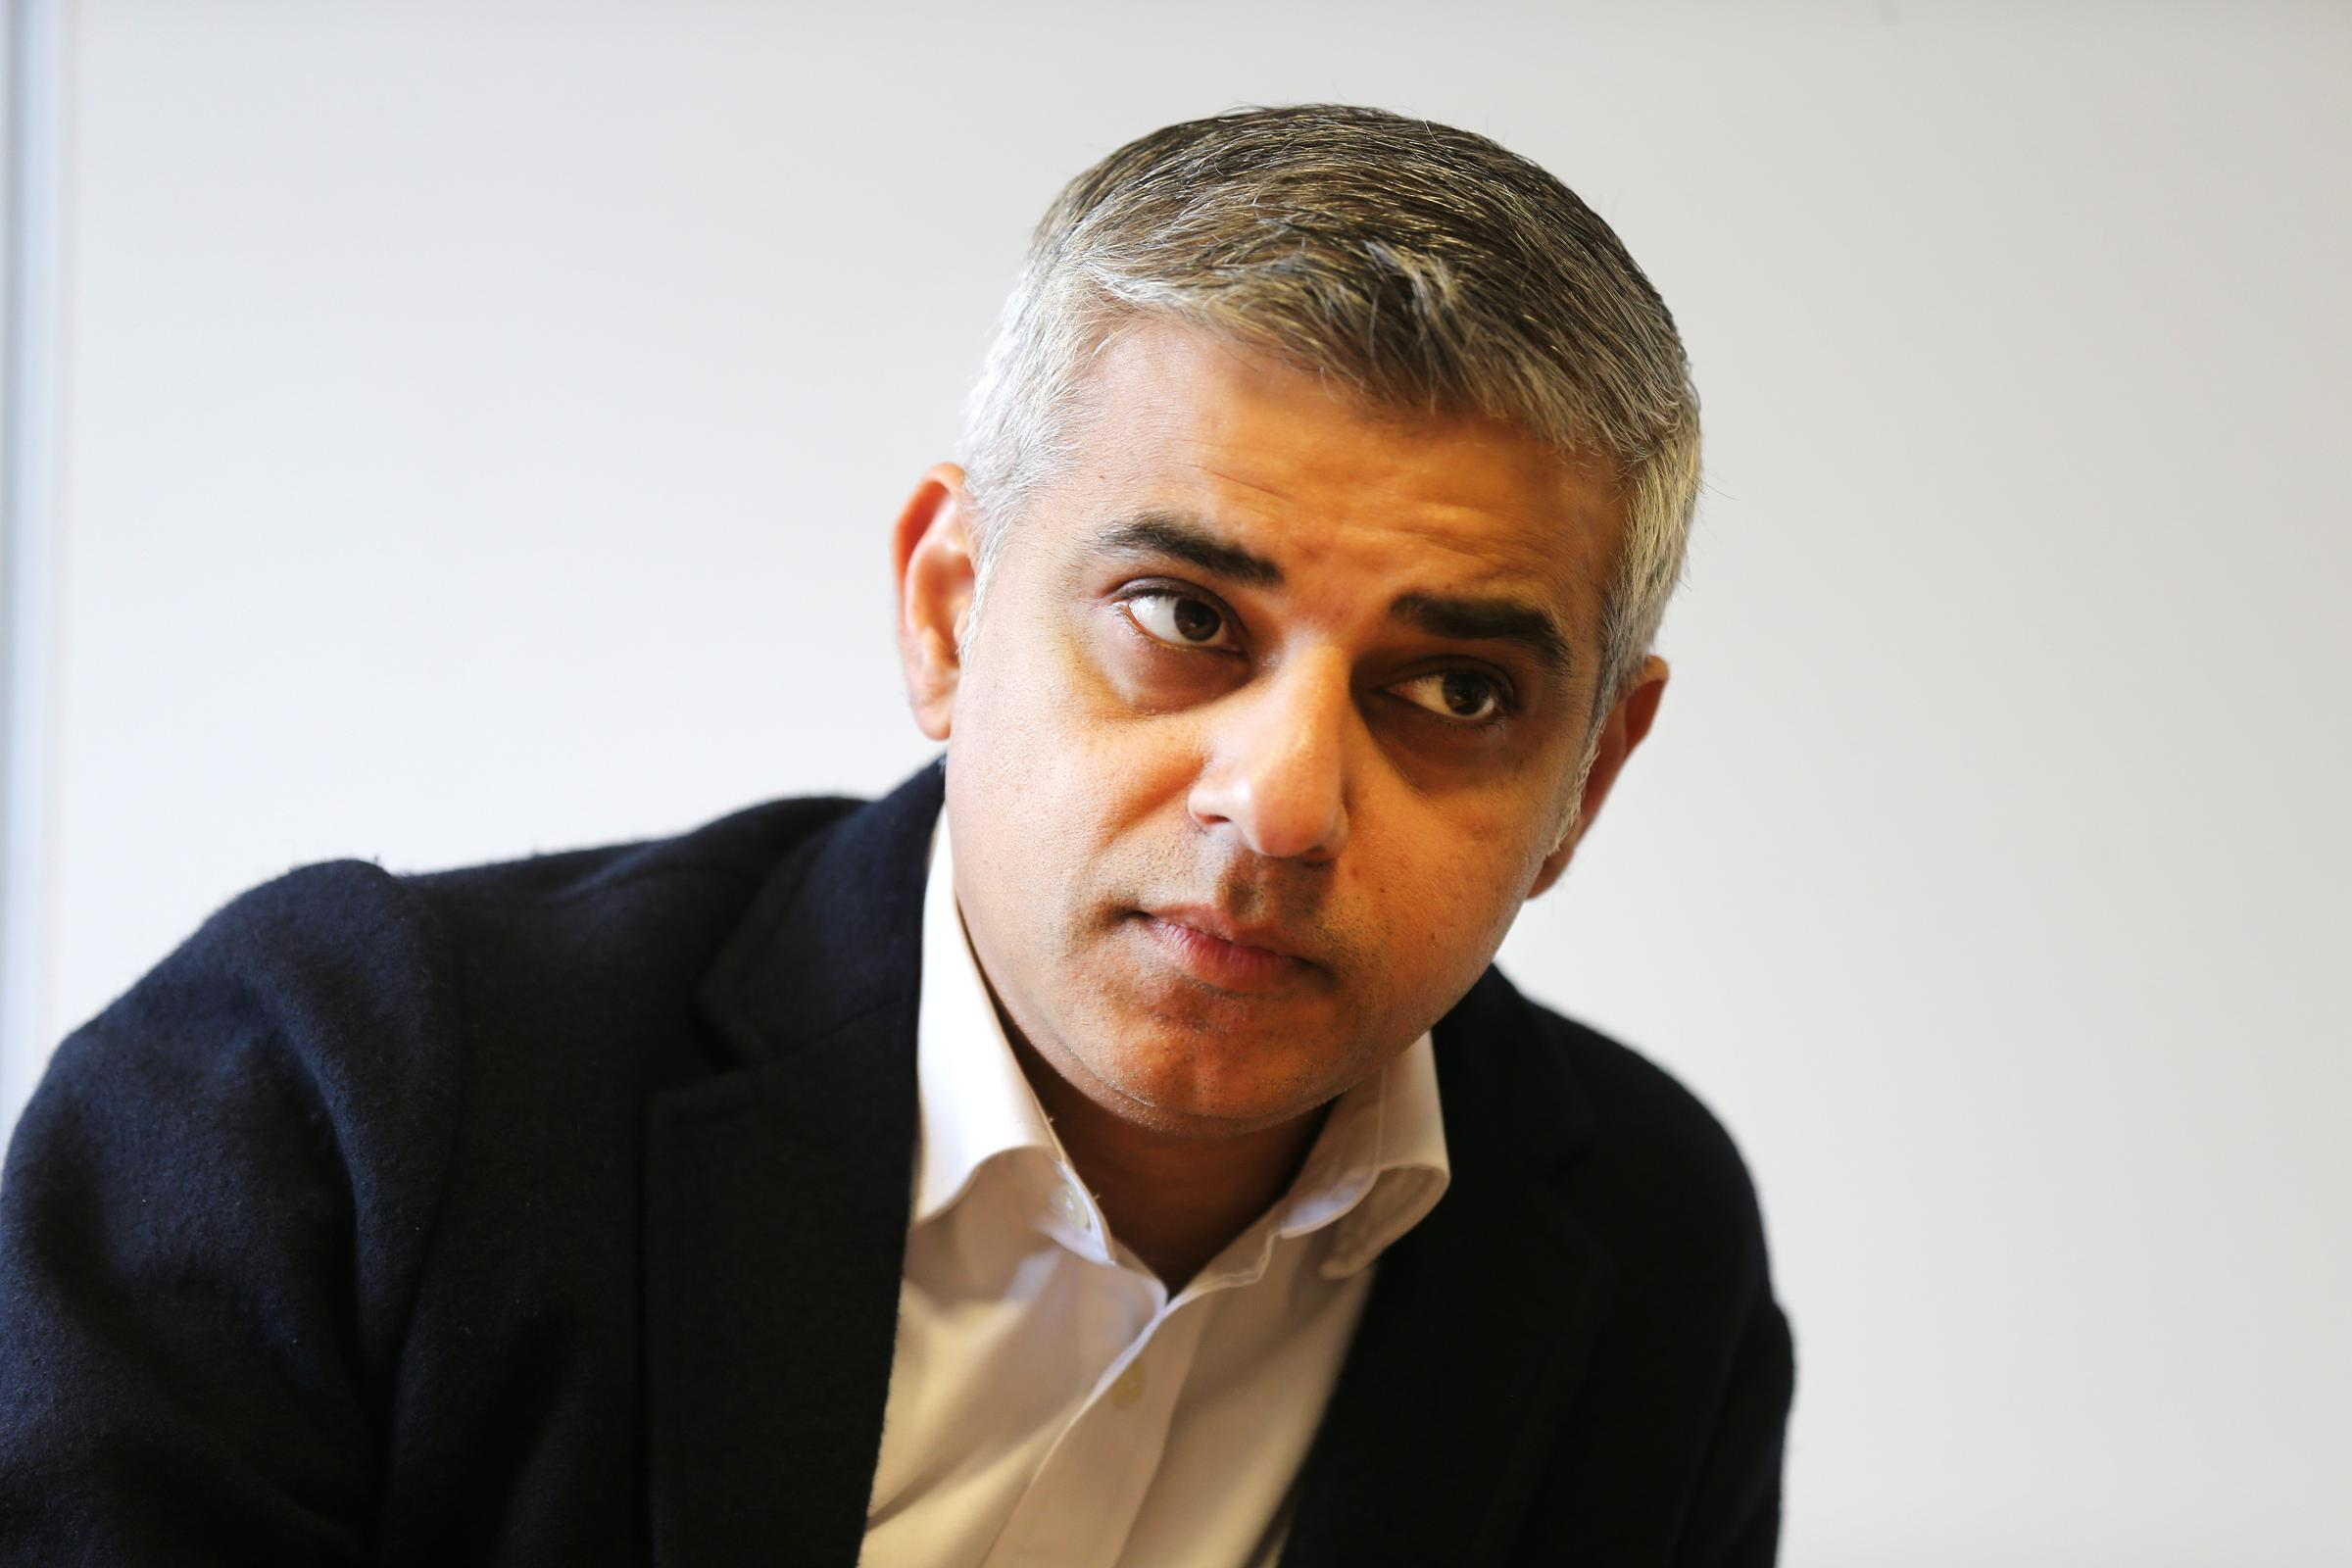 The Mayor of London, Sadiq Khan